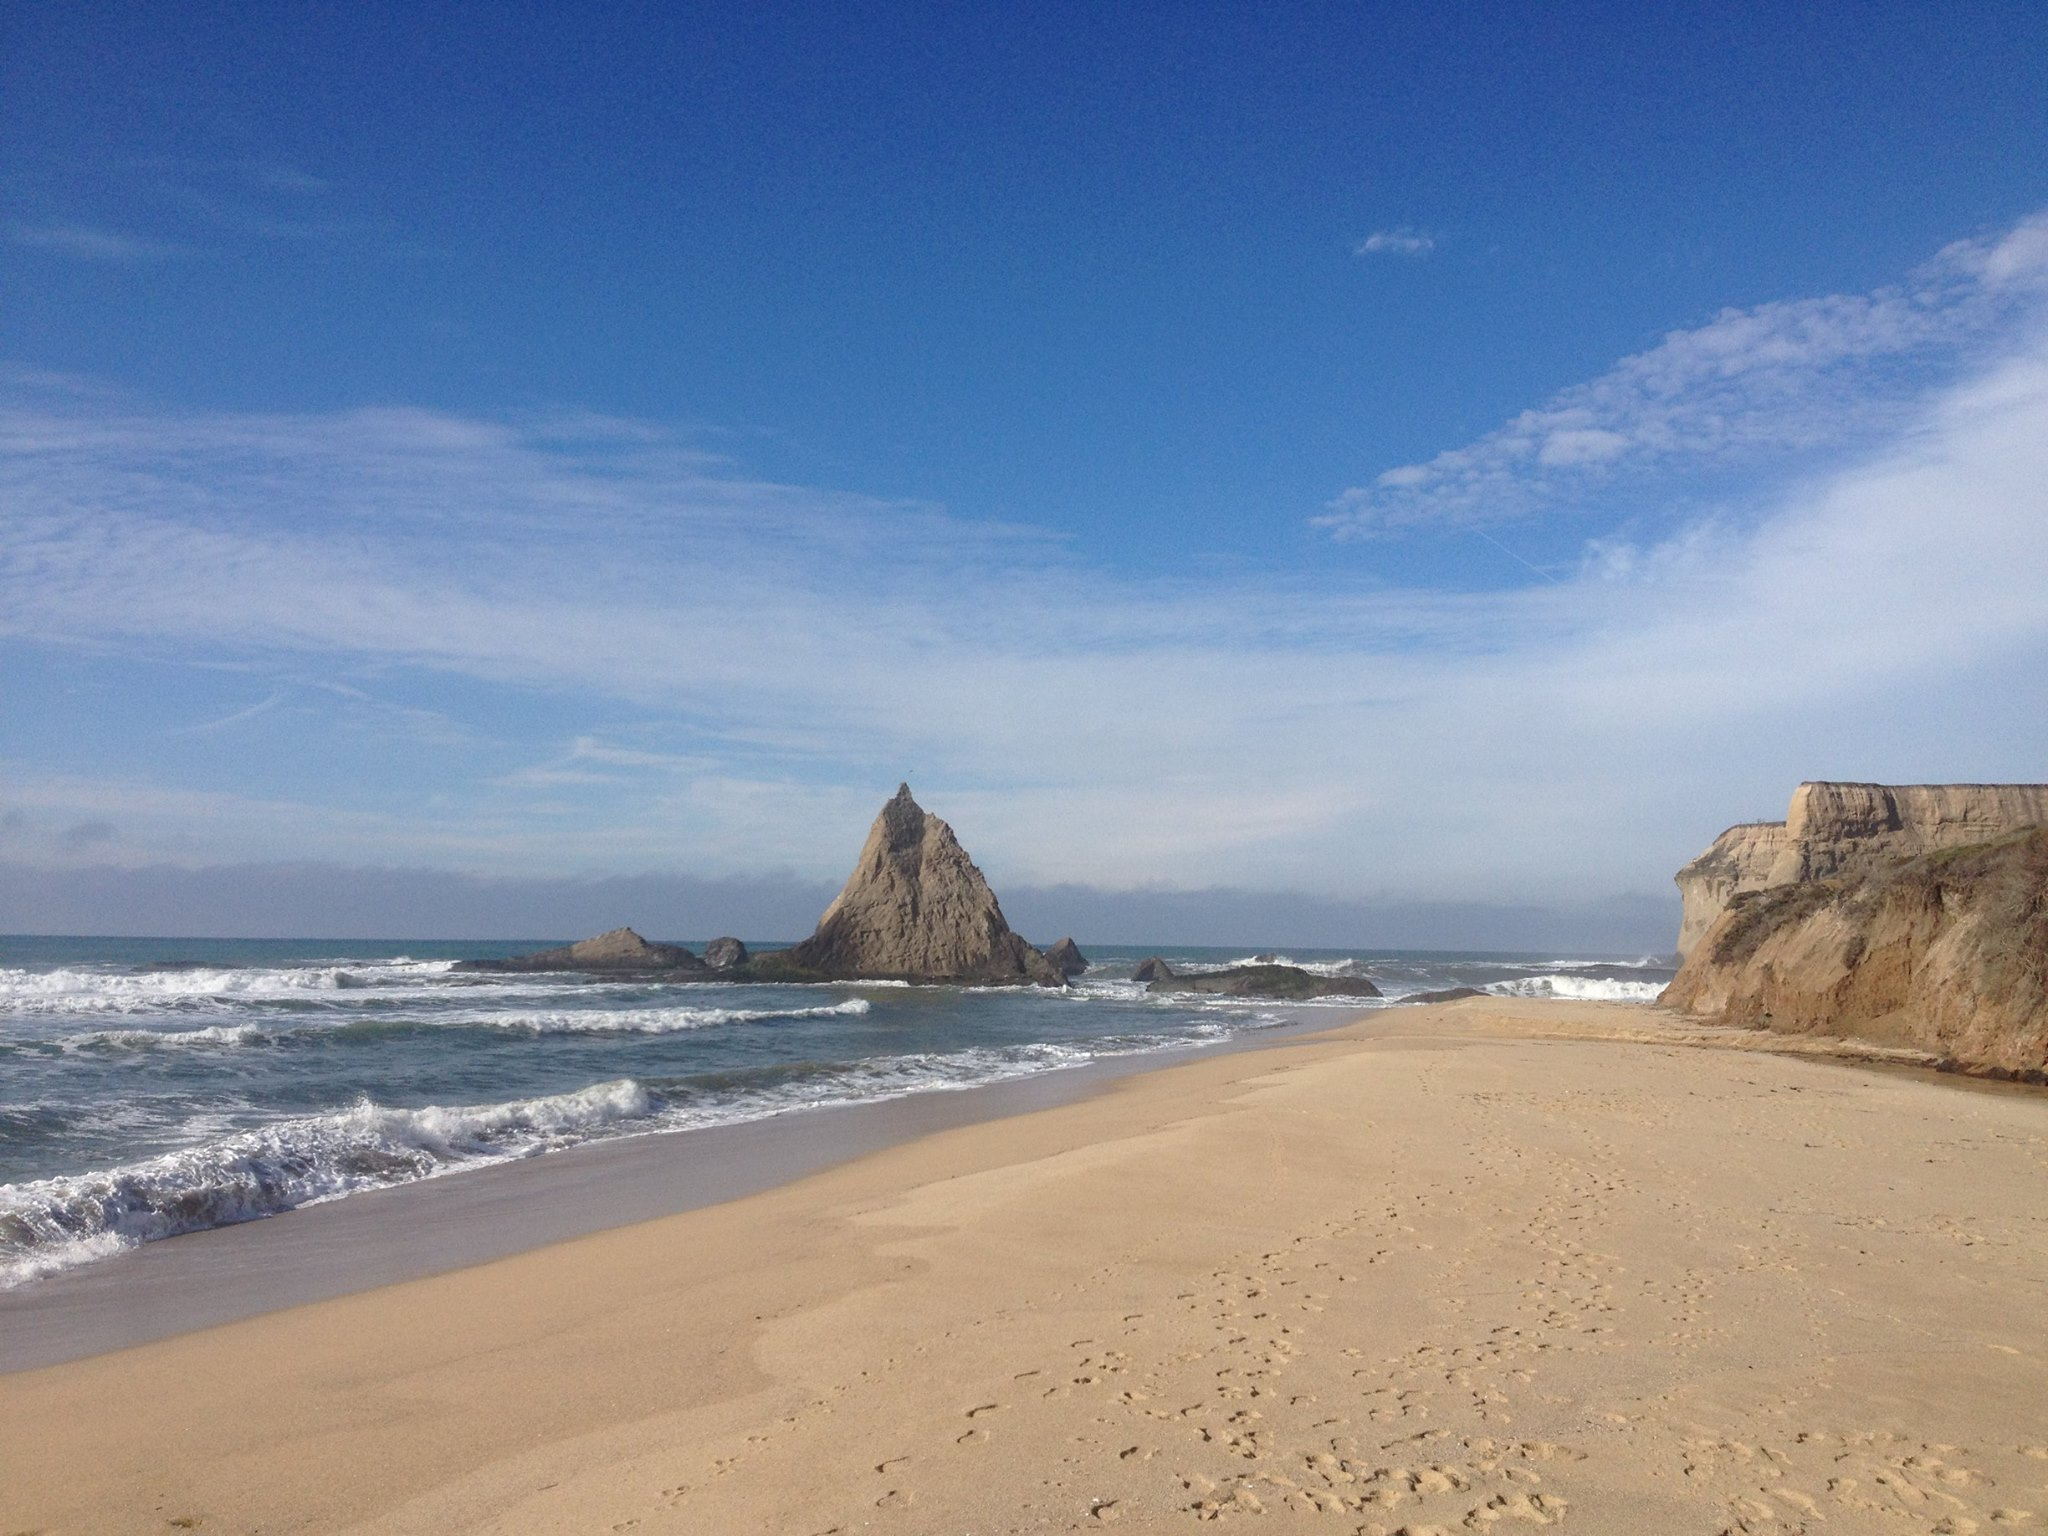 Vinod Khosla's Wants 30 Million to reopen Martins Beach!